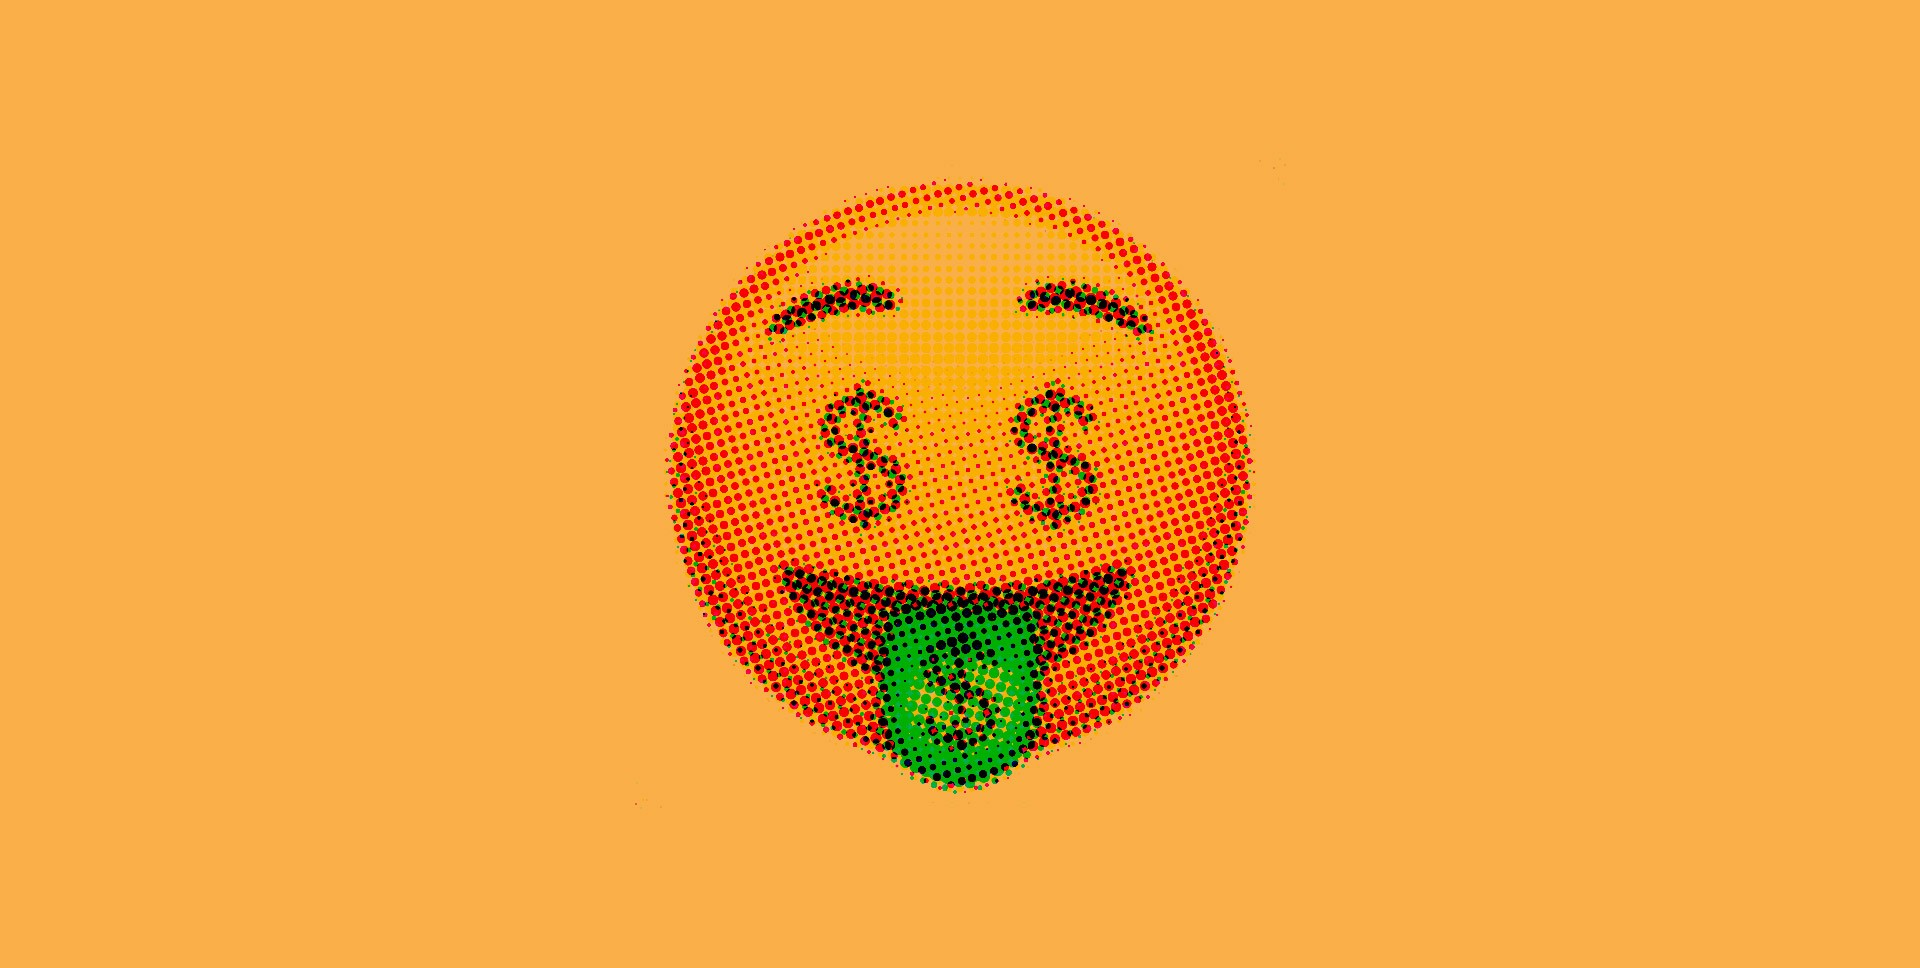 Smiley emoji with dollar signs for eyes on a yellow background.